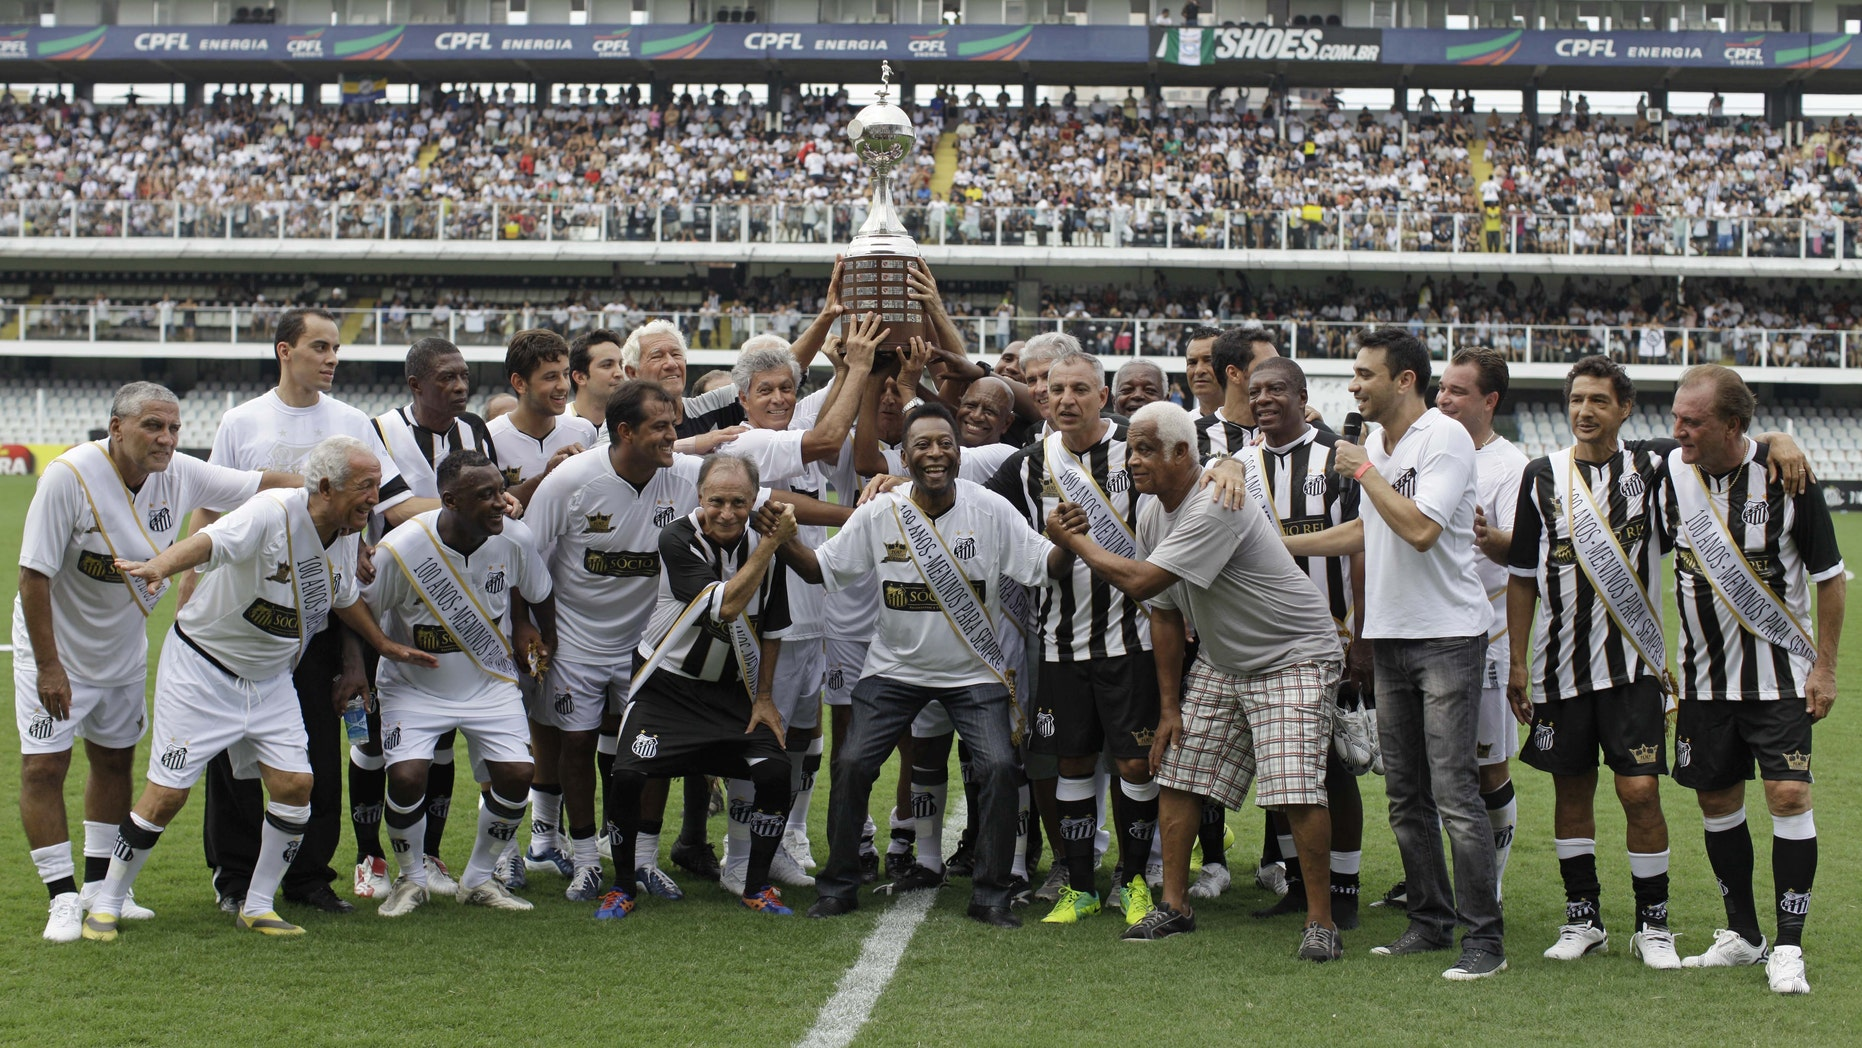 """Pelé, center, with other former Santos soccer players hold up the Libertadores championship trophy during during the centennial anniversary celebration of the team in Santos, Brazil, Saturday, April 14, 2012. Santos, the Brazilian club which ruled football with """"The King"""" Pele in the 1960's, turns 100 with a rich history to show, including many major titles and remarkable victories that make the club one of the most successful in football. (AP Photo/Nelson Antoine)"""